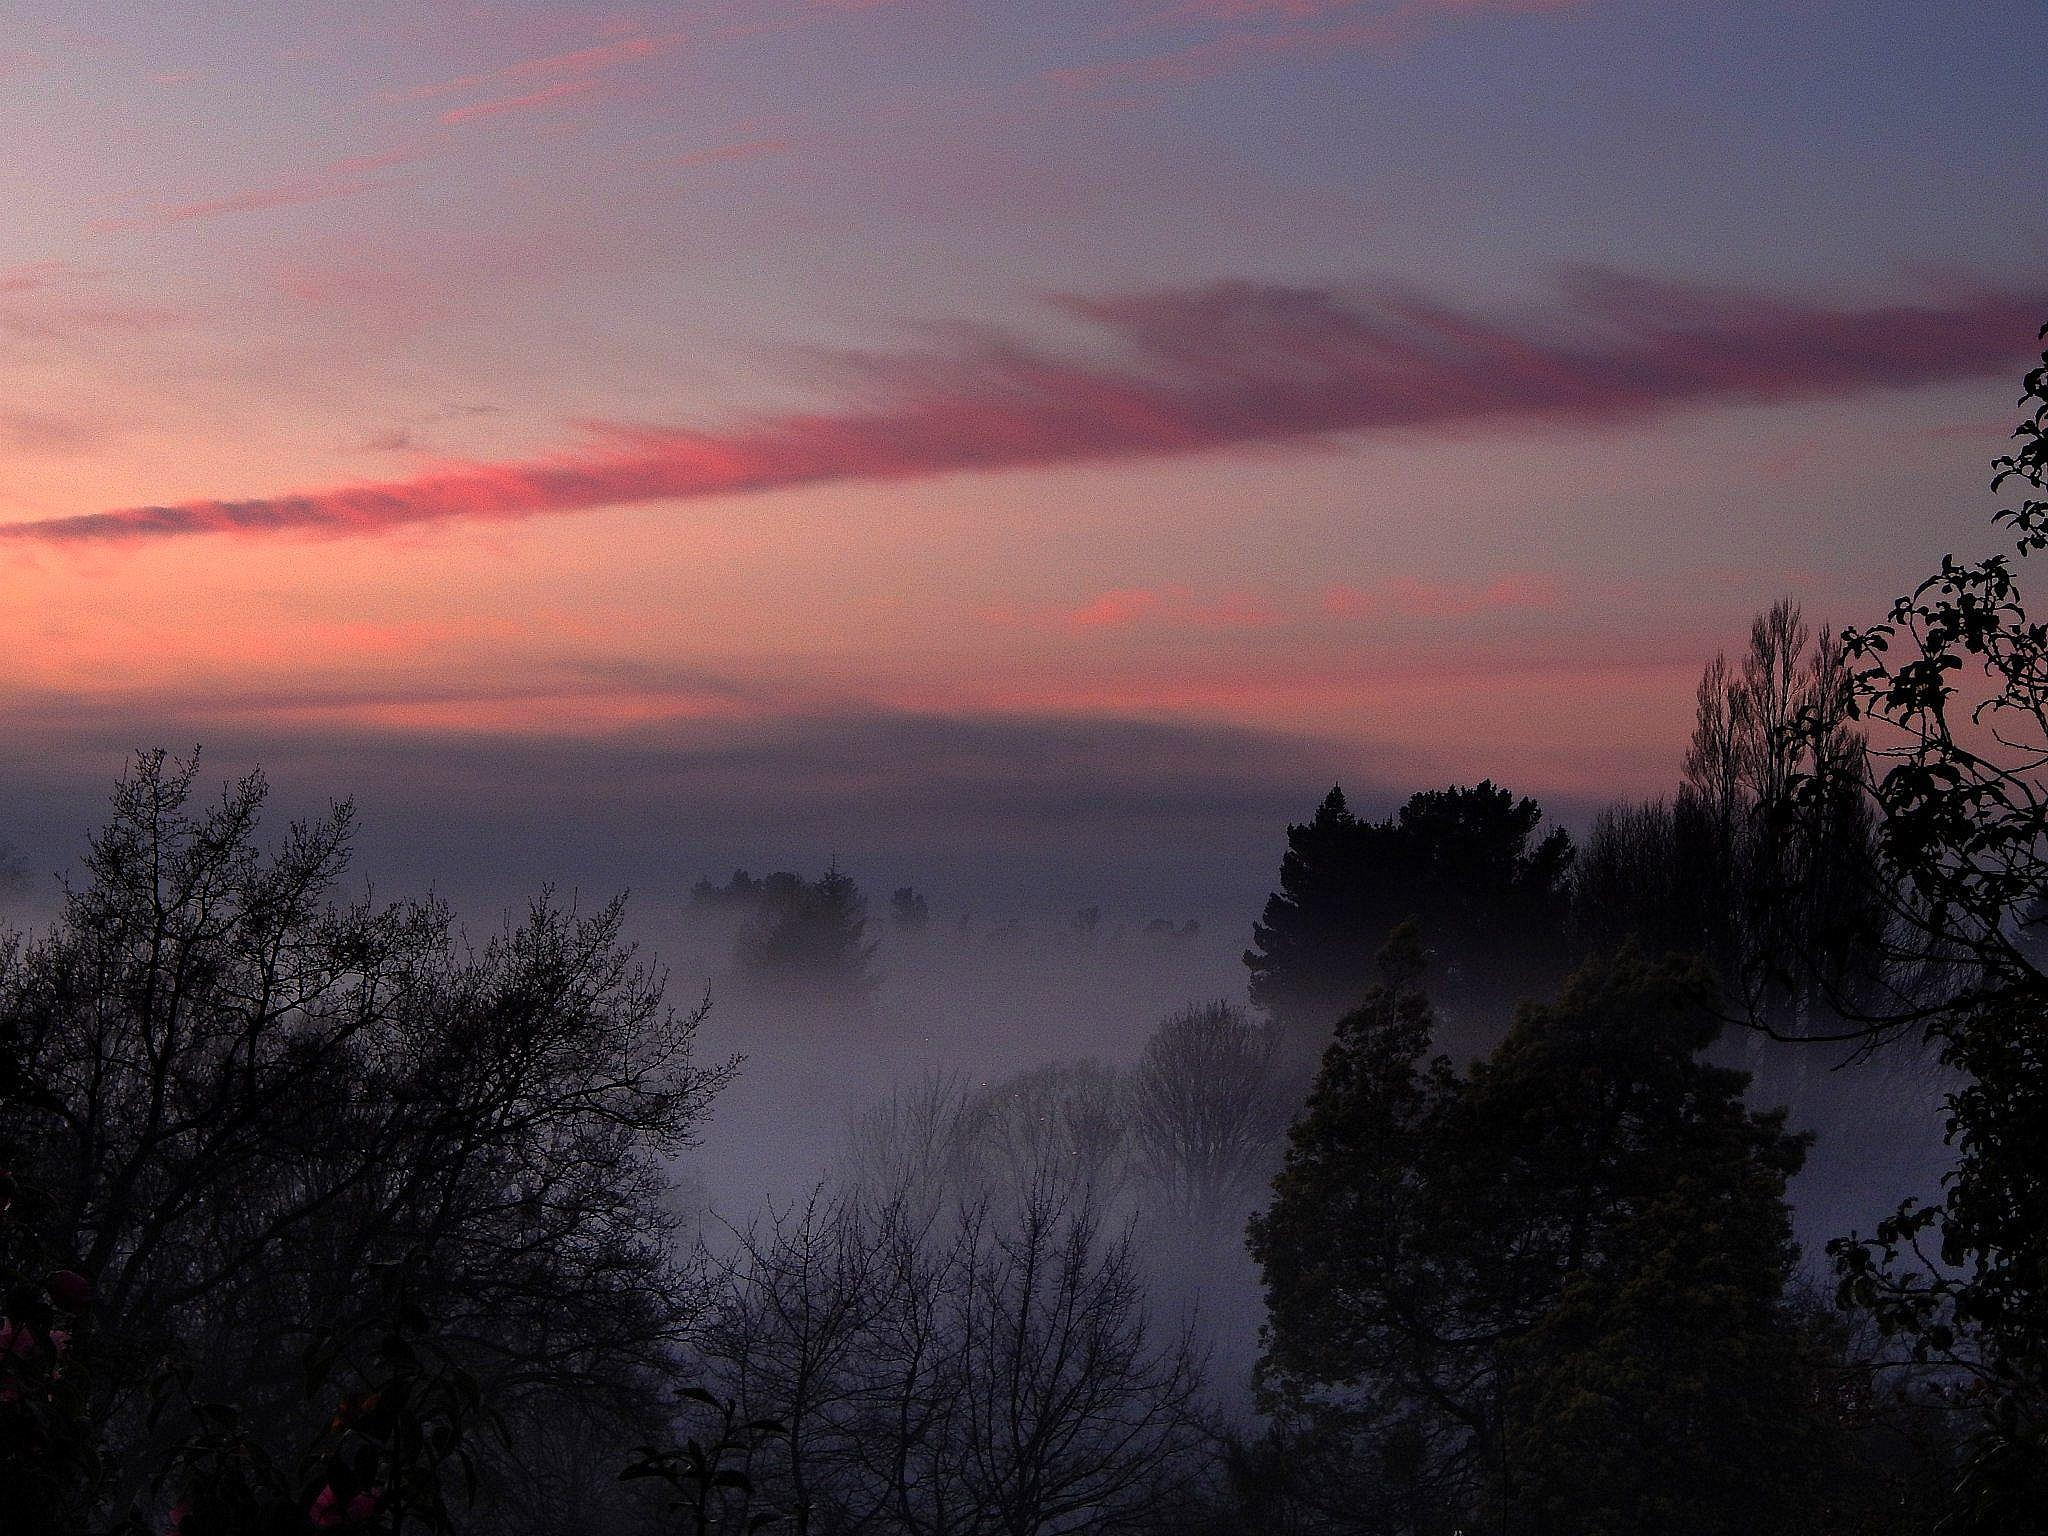 Misty Morning by LindaFenton